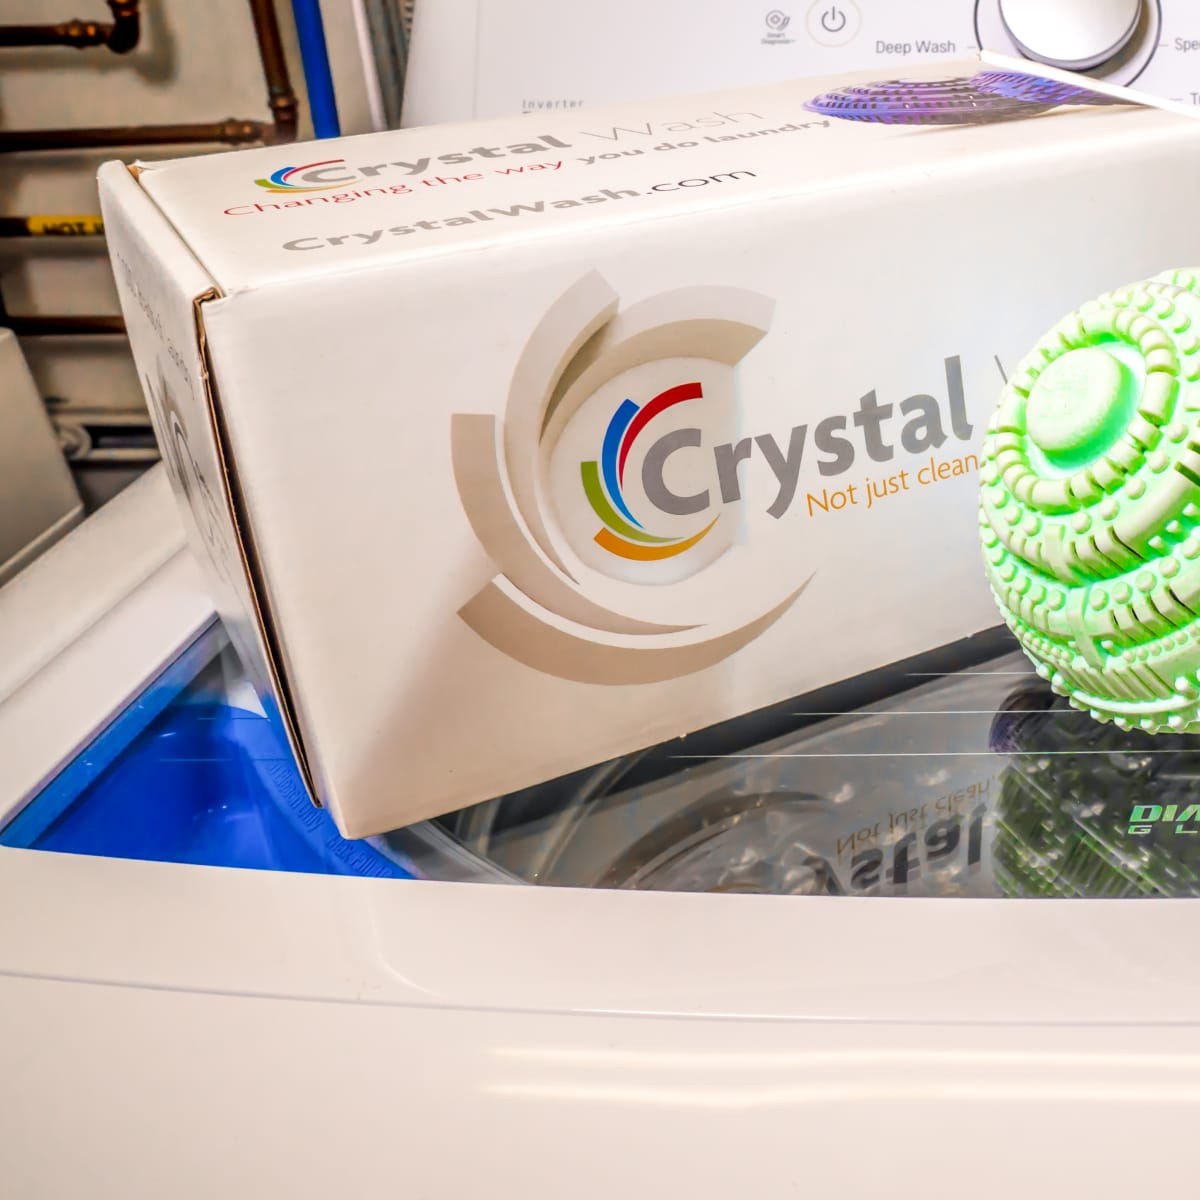 Crystal Wash review: Does this detergent alternative actually work